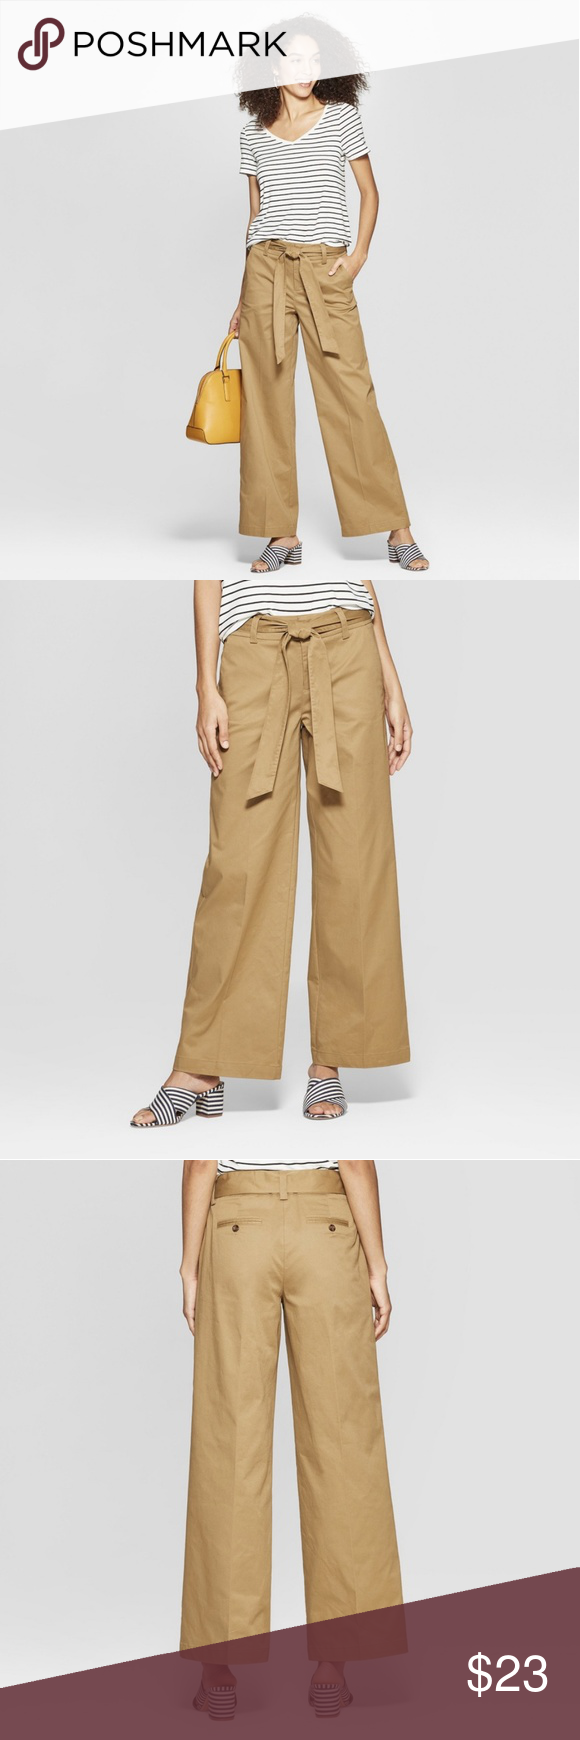 NWT wide leg pants size 6 These are brand new with tags, a new day, by target wide leg pants.  Size...